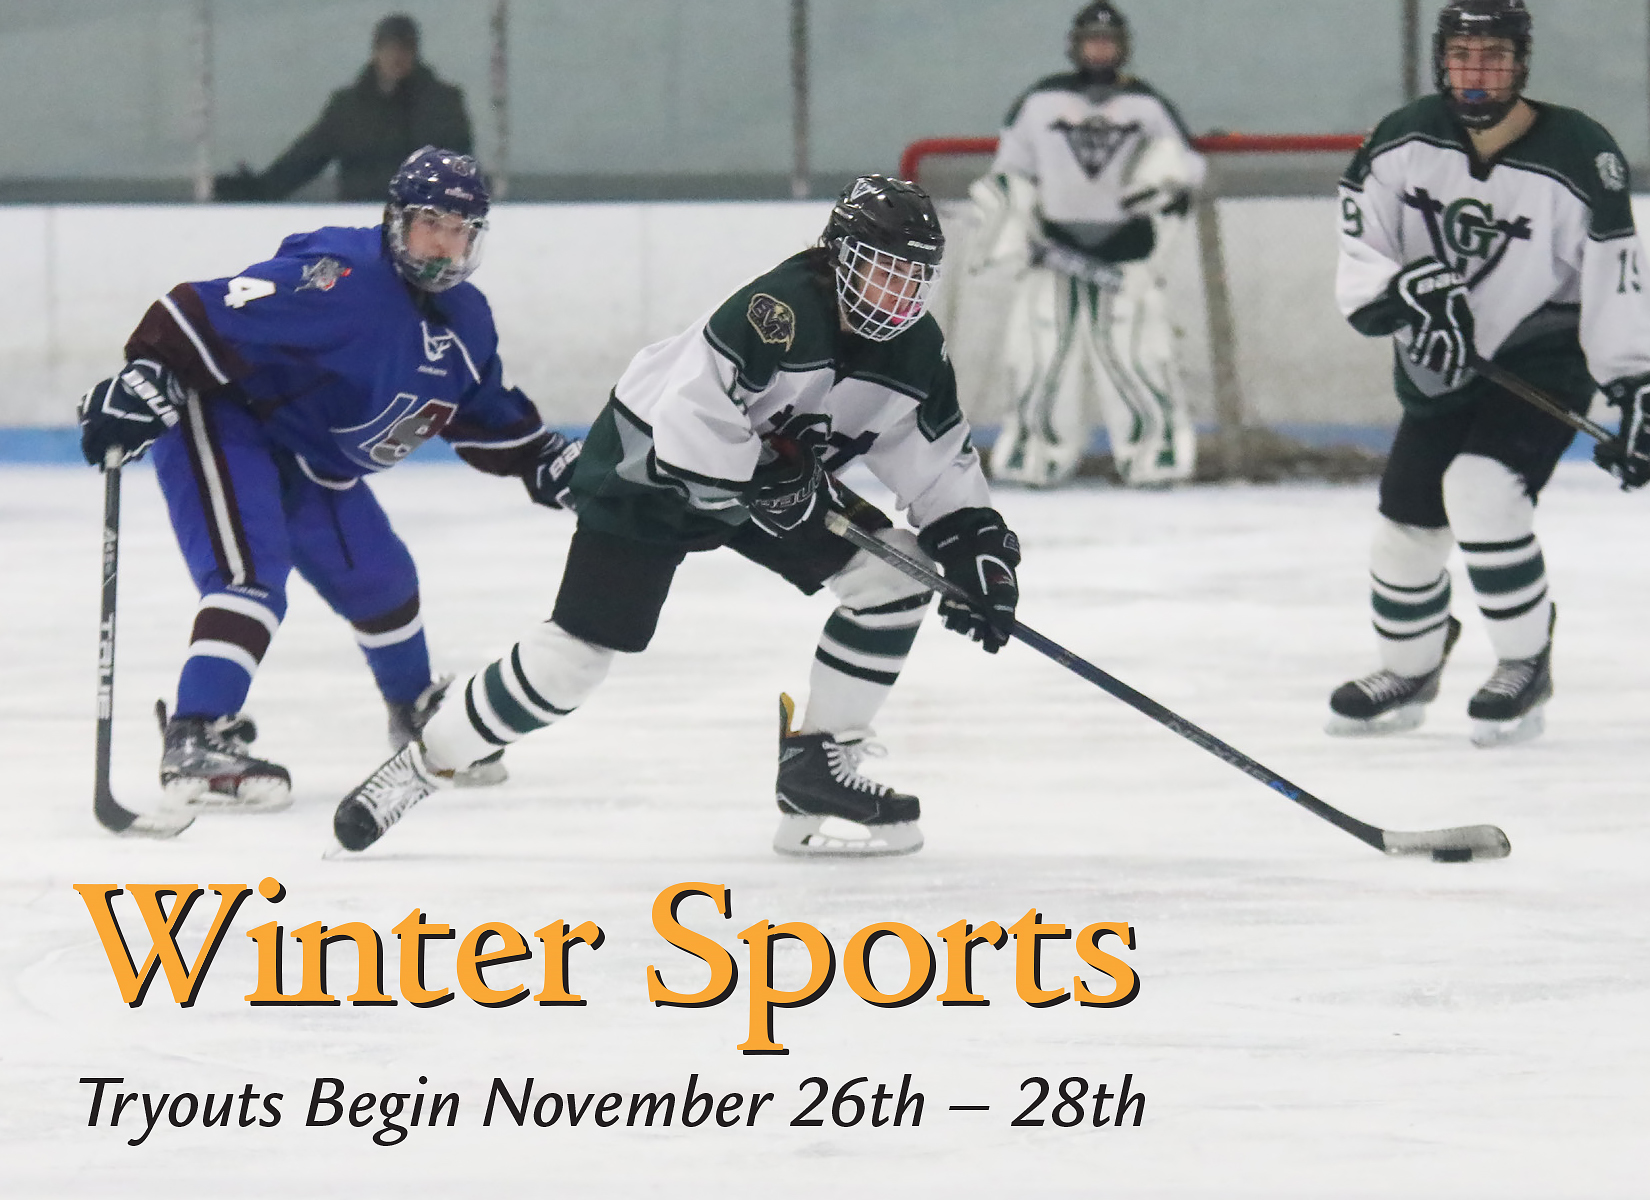 Winter Sports Ad